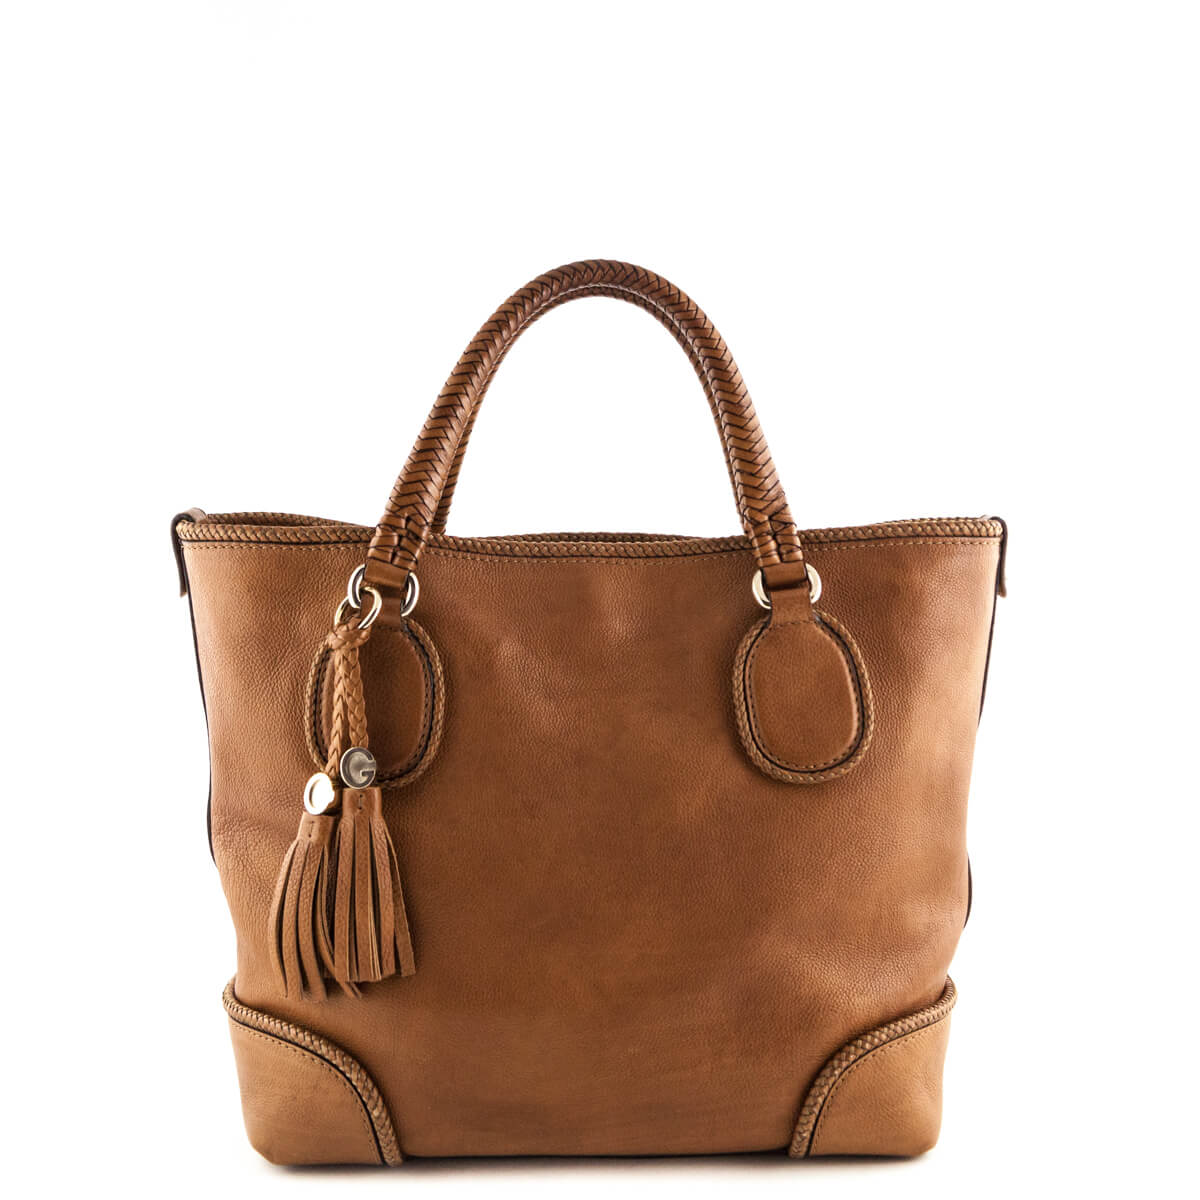 64810f72778e Gucci Tan Leather Braided Tote - LOVE that BAG - Preowned Authentic  Designer Handbags ...